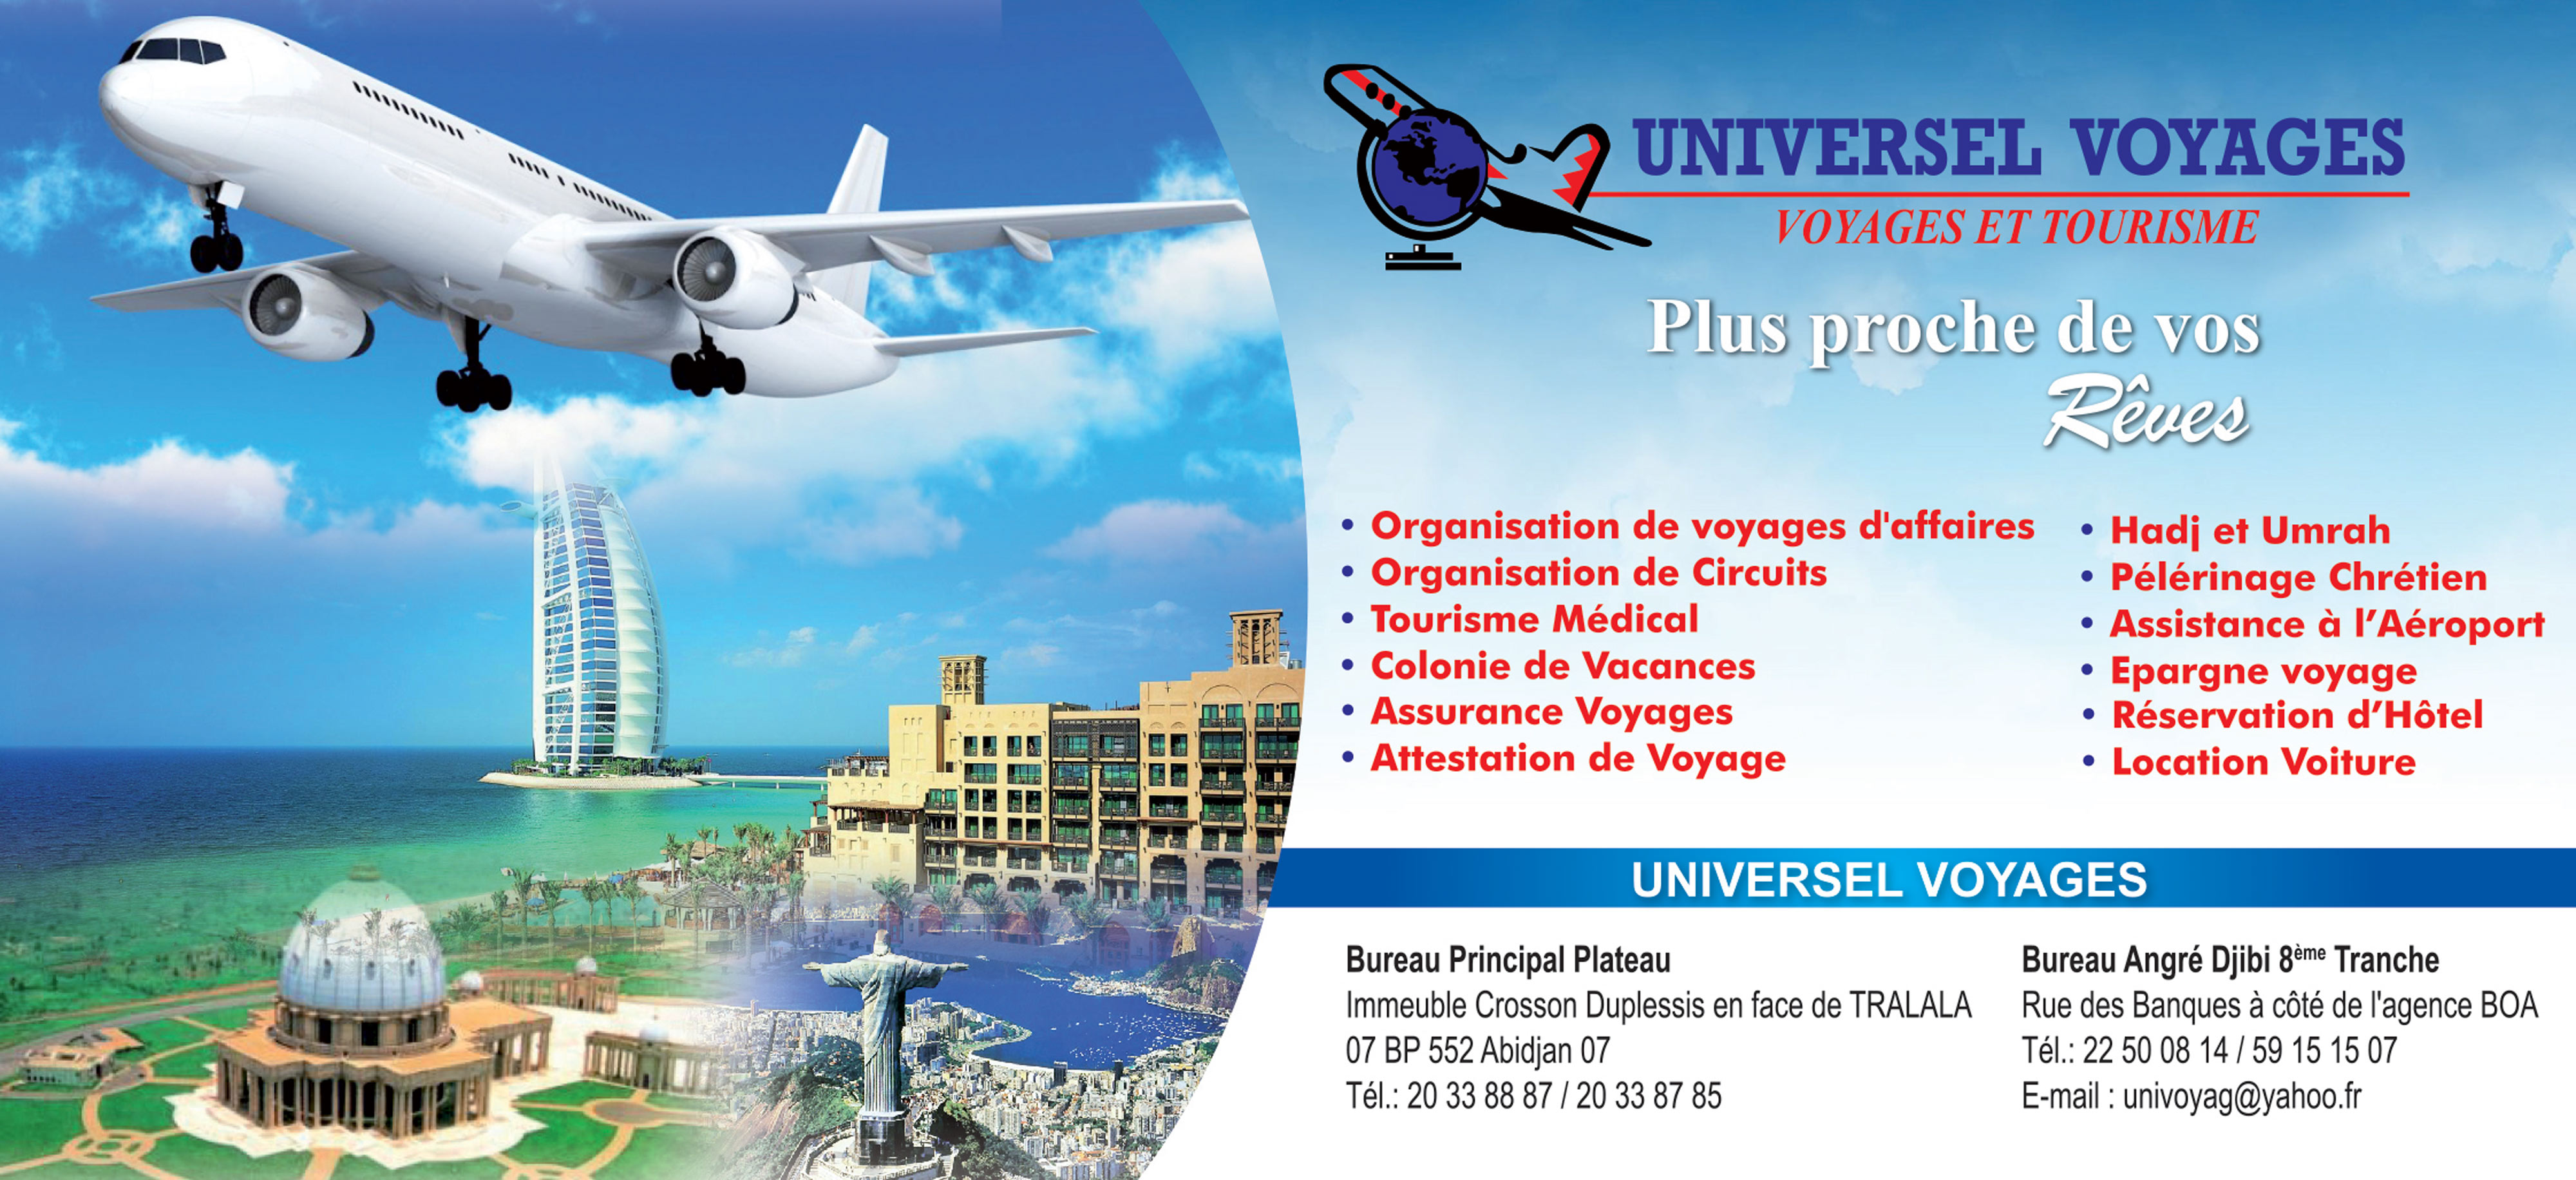 Universel Voyages